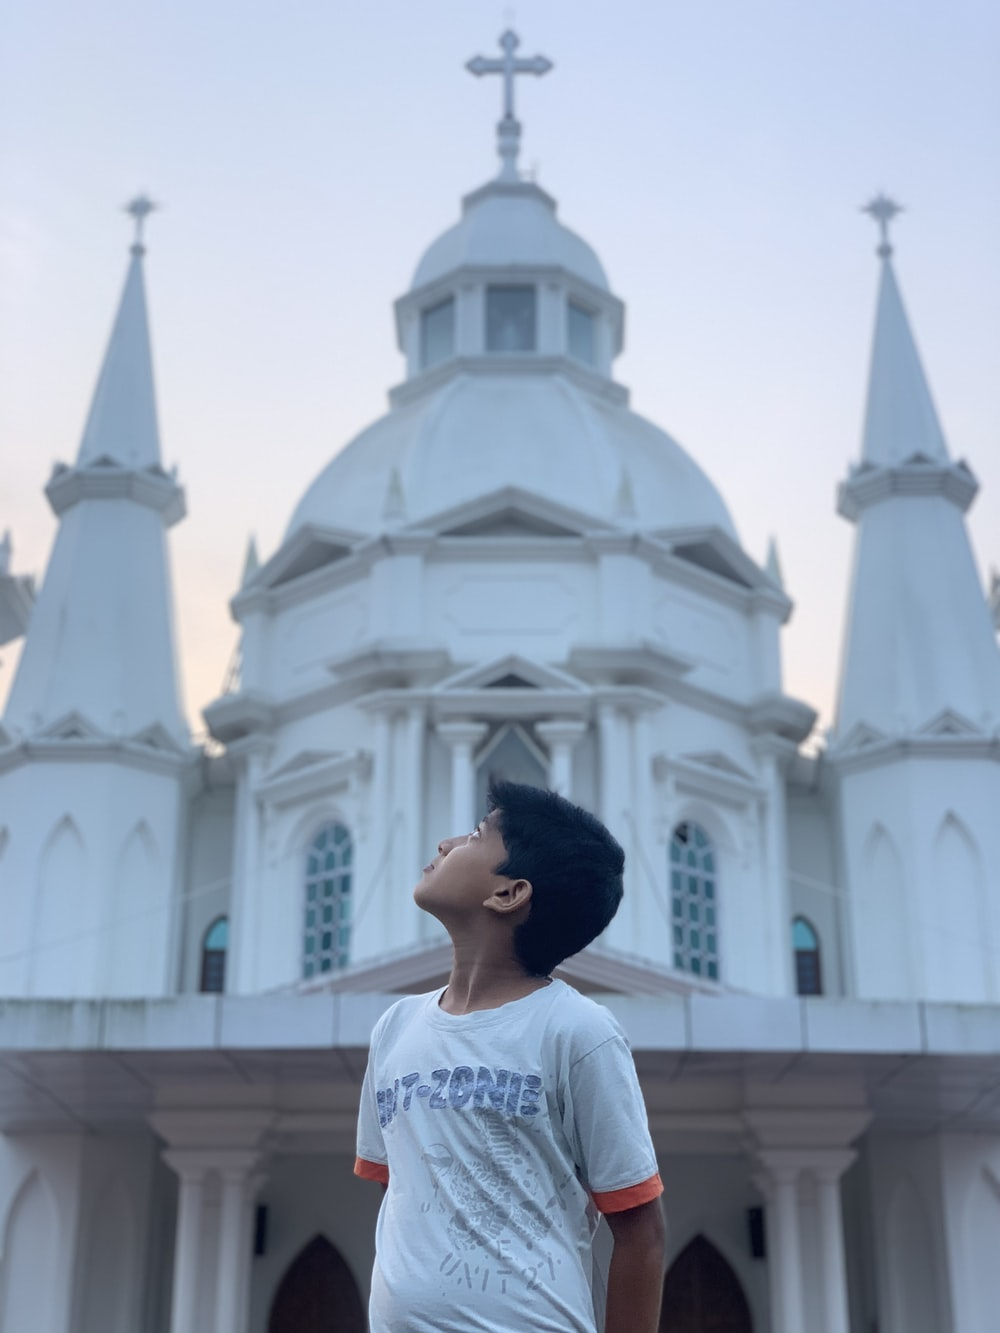 woman in white shirt standing near white cathedral